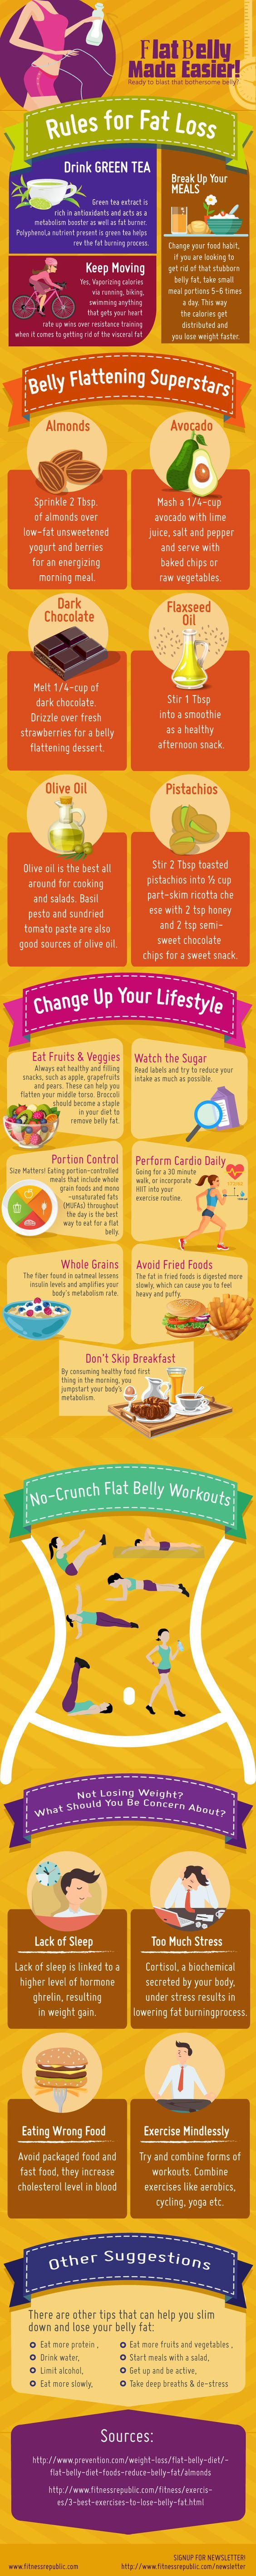 These 10 awesome fast weight loss lists are SO GOOD! I've started to read the skinny rules and followed some of the tips and hacks and I'm ALREADY LOSING WEIGHT! This is such an AWESOME POST! I'm DEFINITELY PINNING for later!